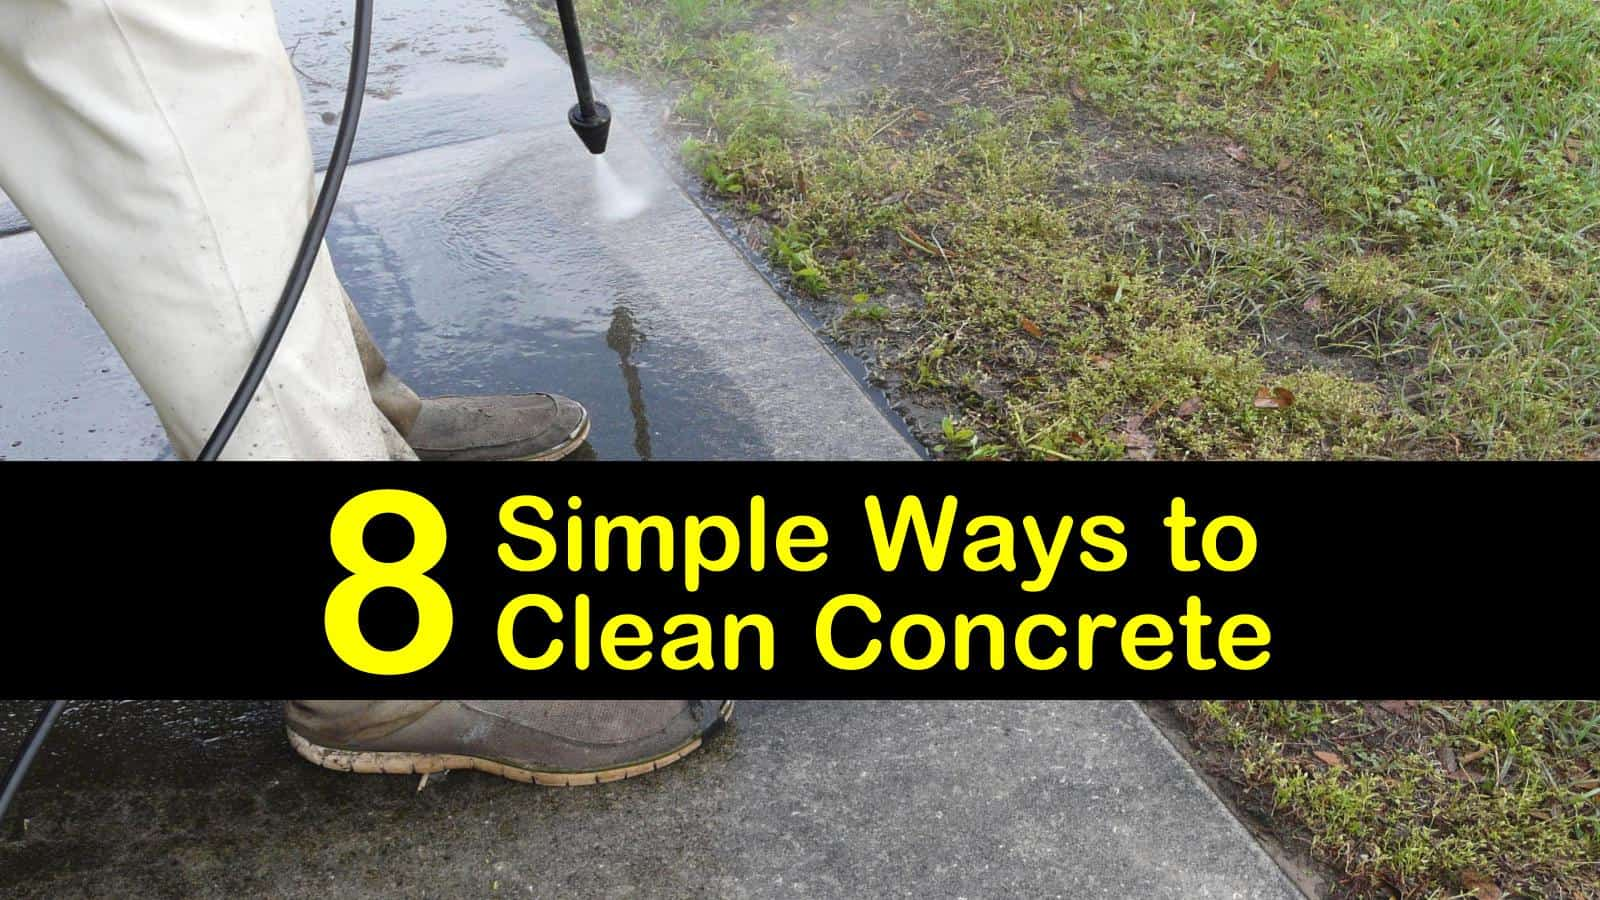 how to clean concrete titleimg1